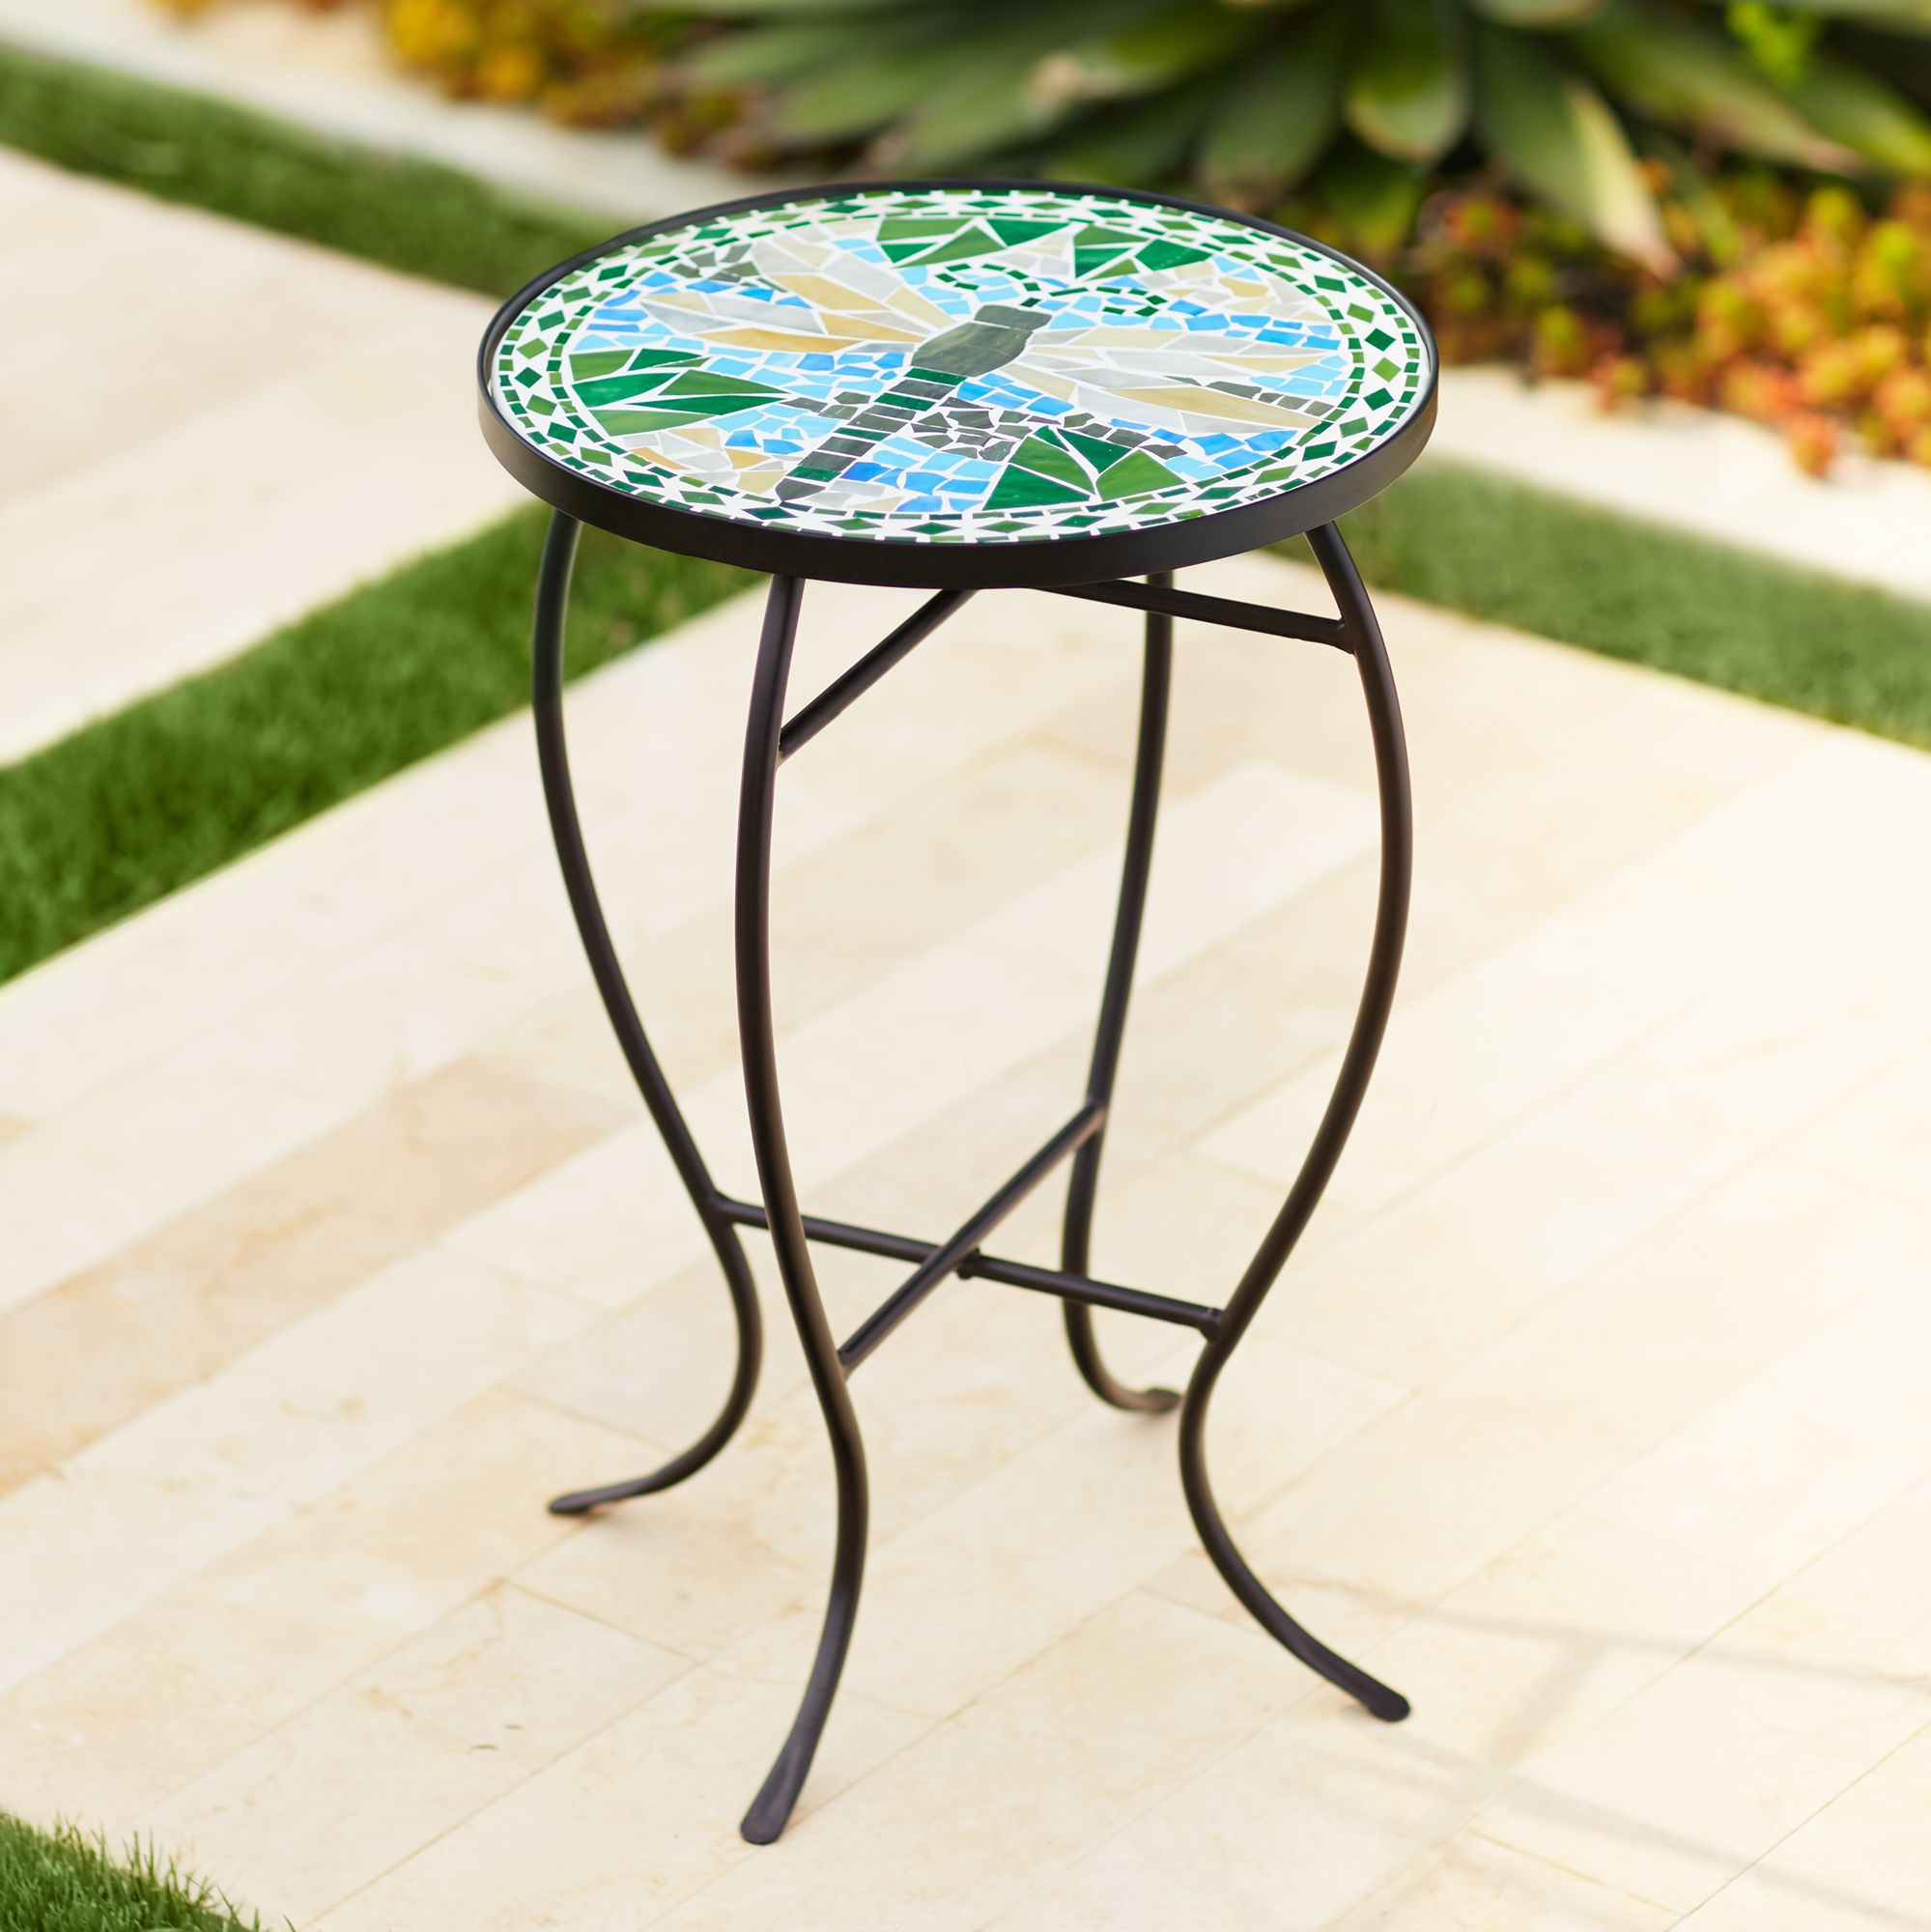 dragonfly mosaic black iron outdoor accent table - Outdoor Accent Tables